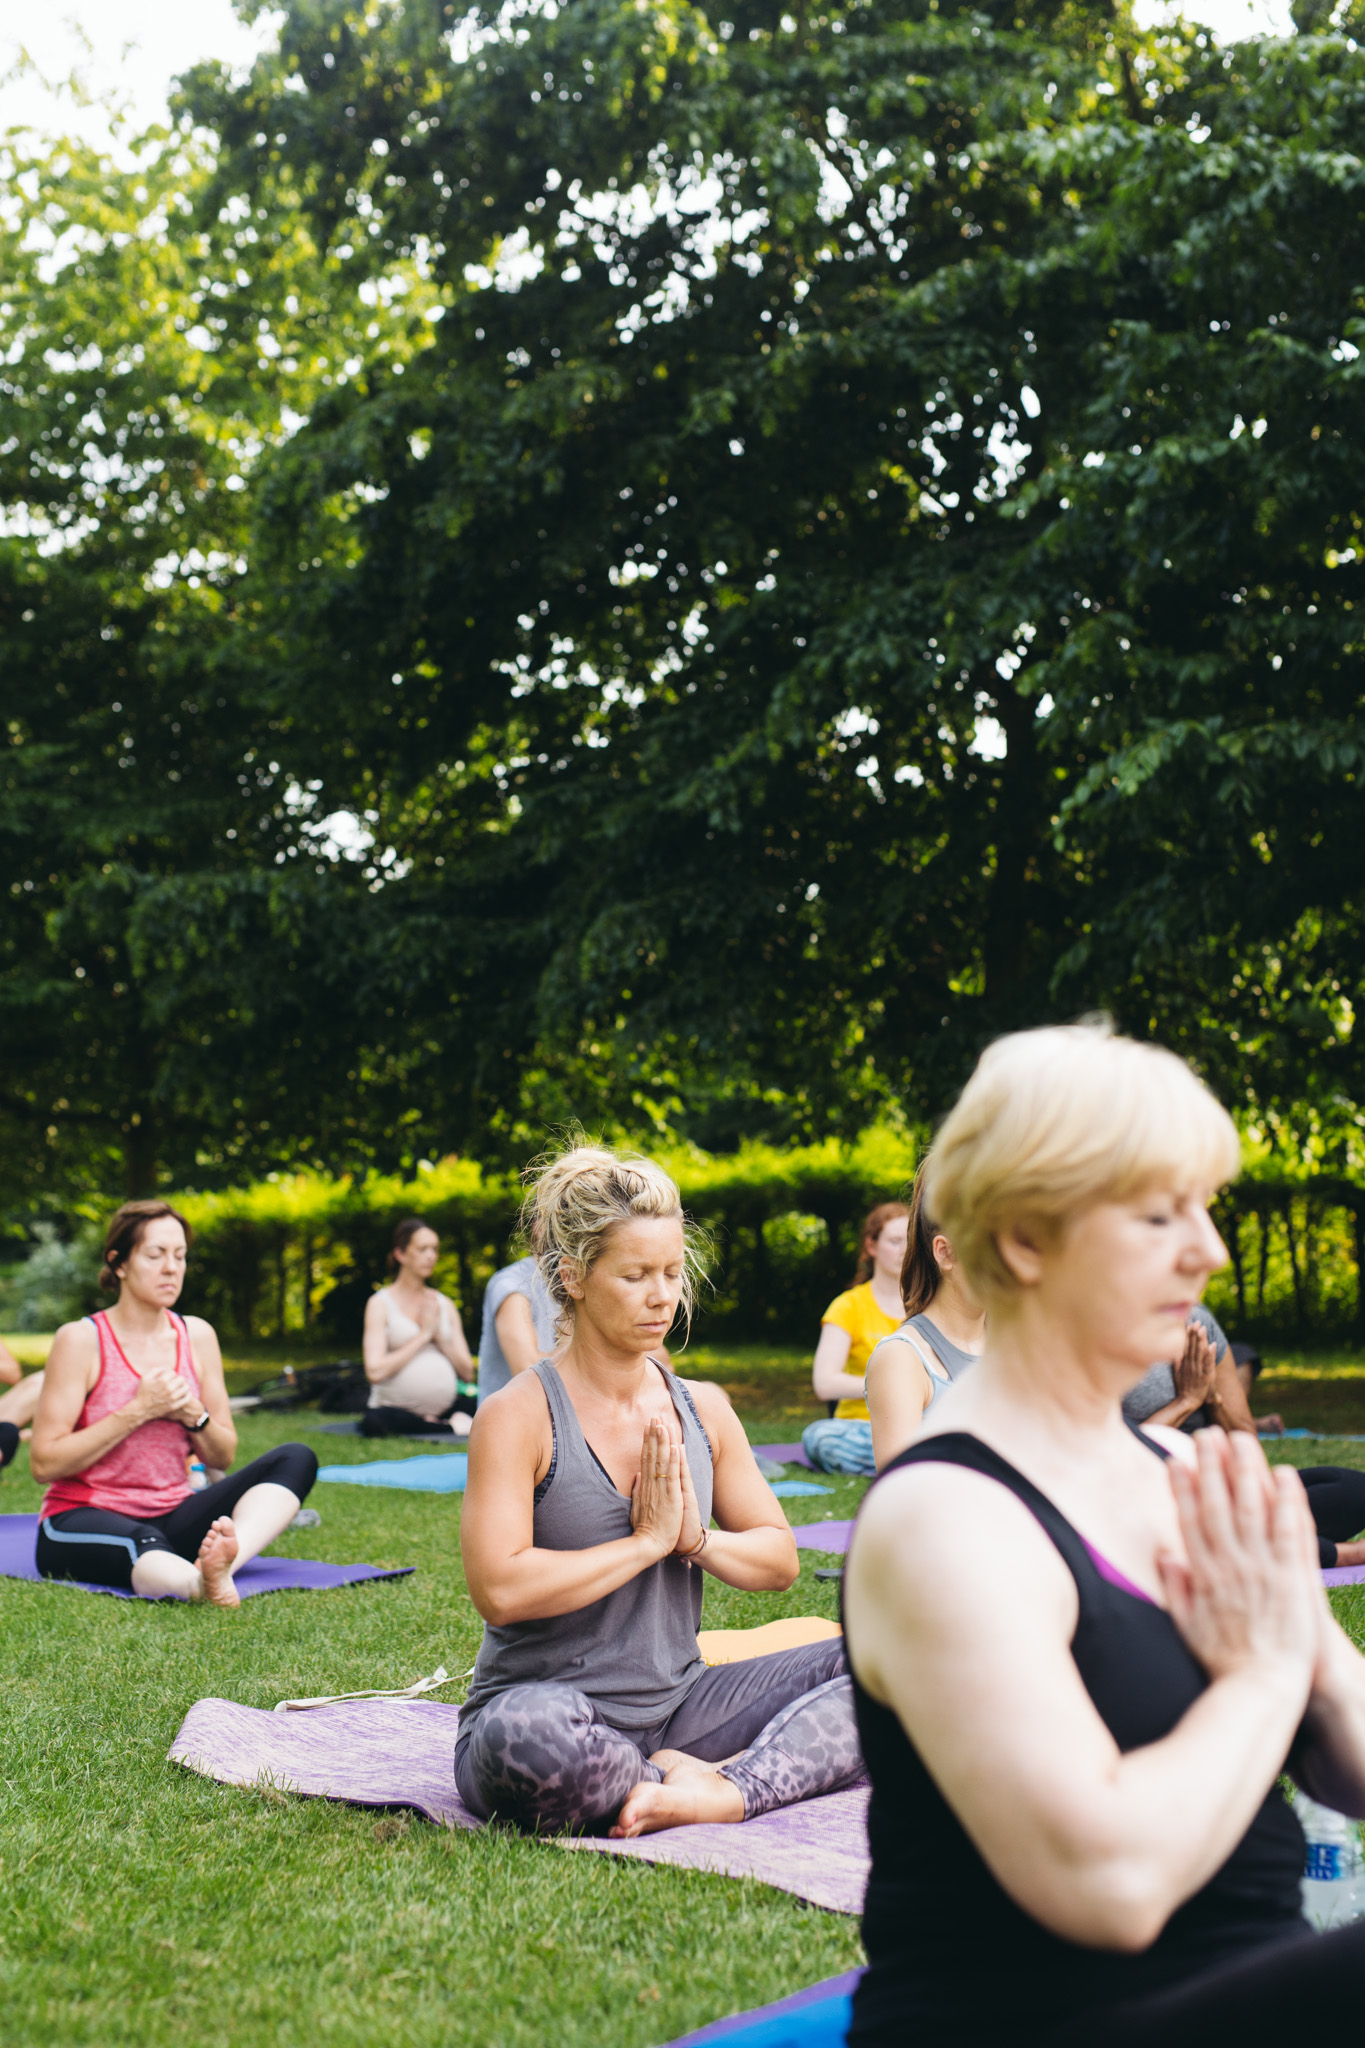 Yoga at the Park - 21st June 2017